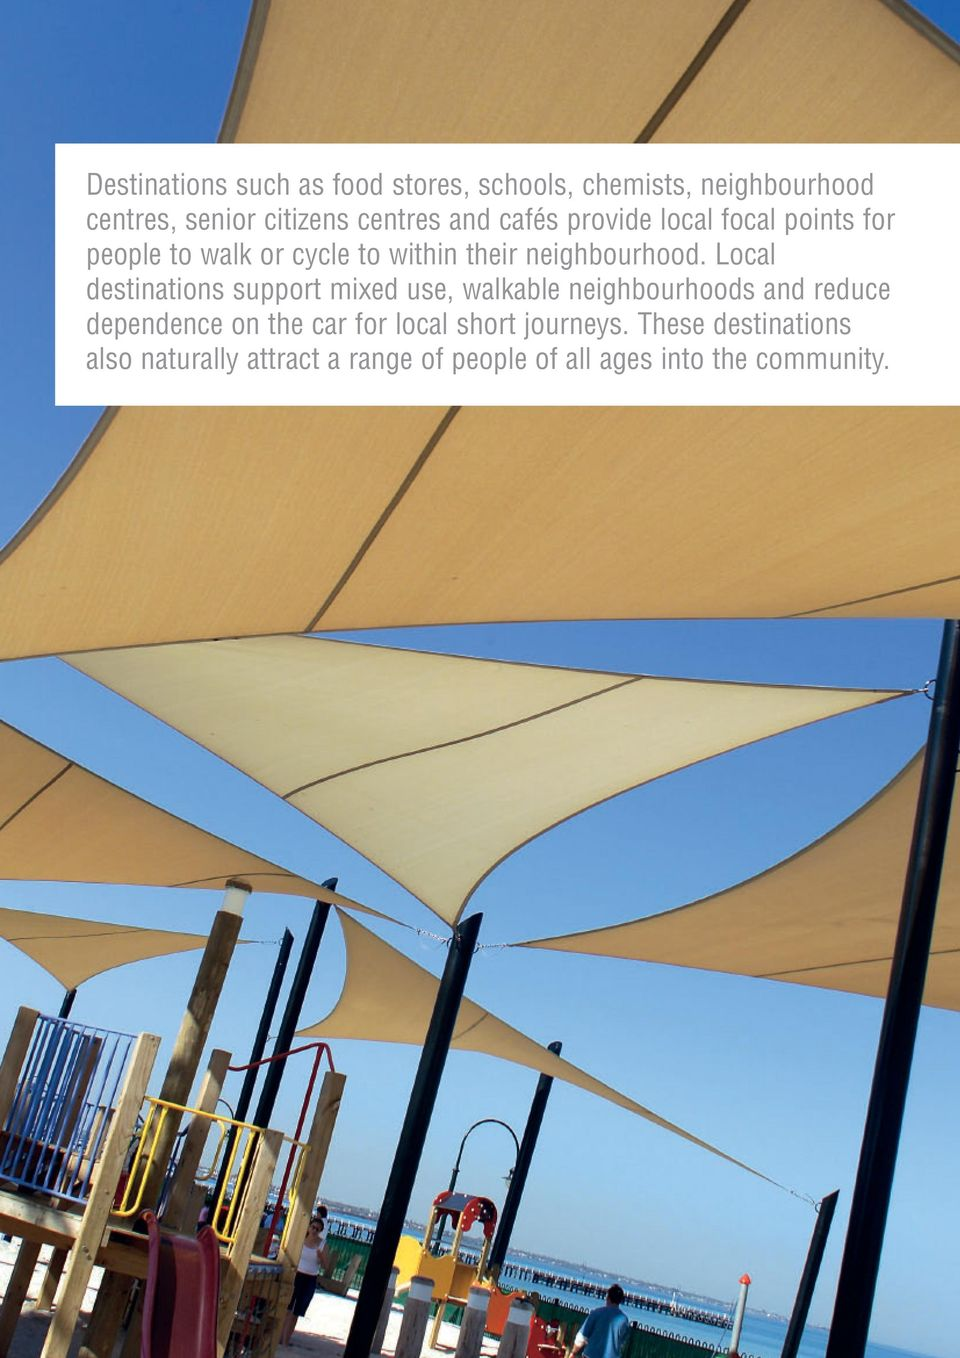 Local destinations support mixed use, walkable neighbourhoods and reduce dependence on the car for